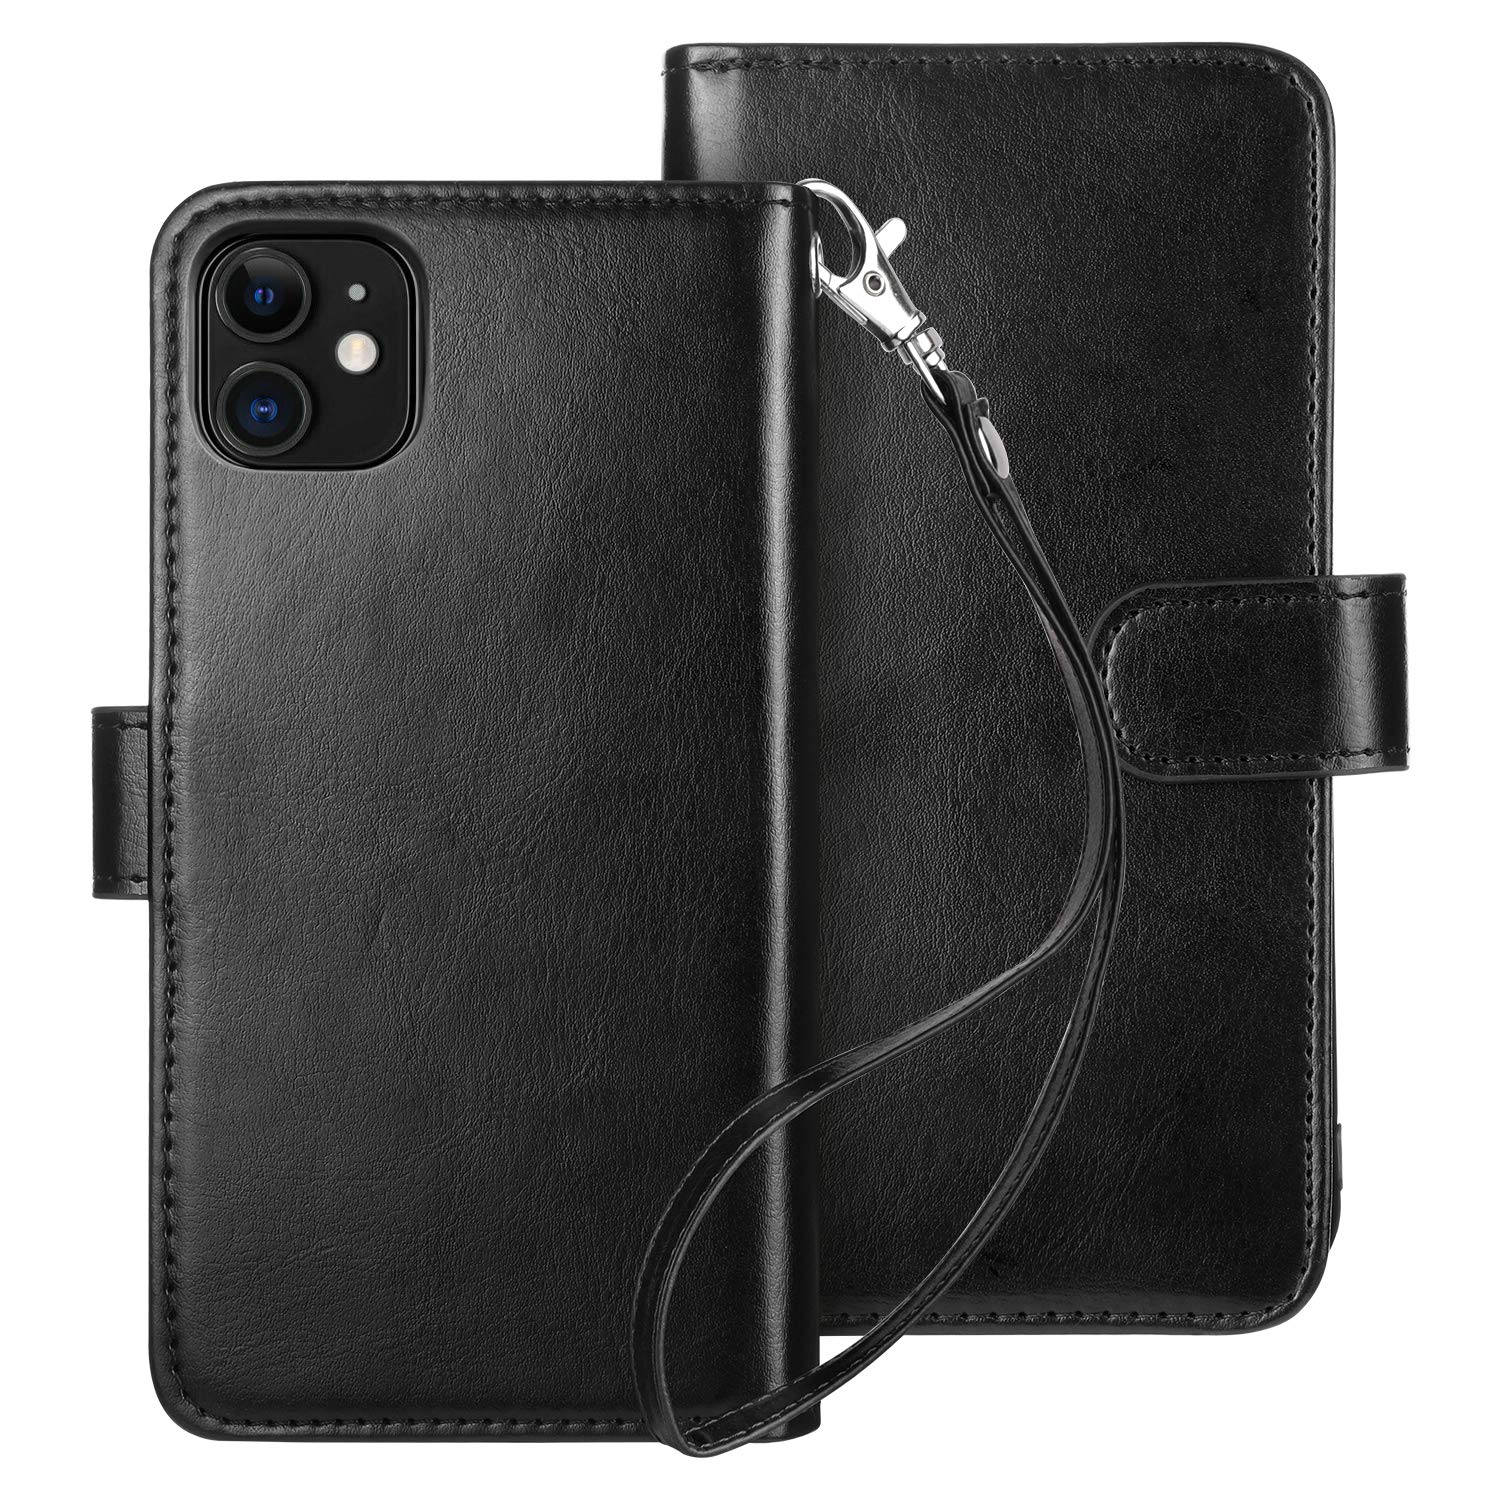 HianDier Case for iPhone 11 Wallet Cases with Card Holder 9 Slots Detachable PU Leather Flip Cover Shockproof Magnetic Clasp Lanyard Dual Layer Wallet Case for 2019 iPhone 11 6.1 Inches, Black